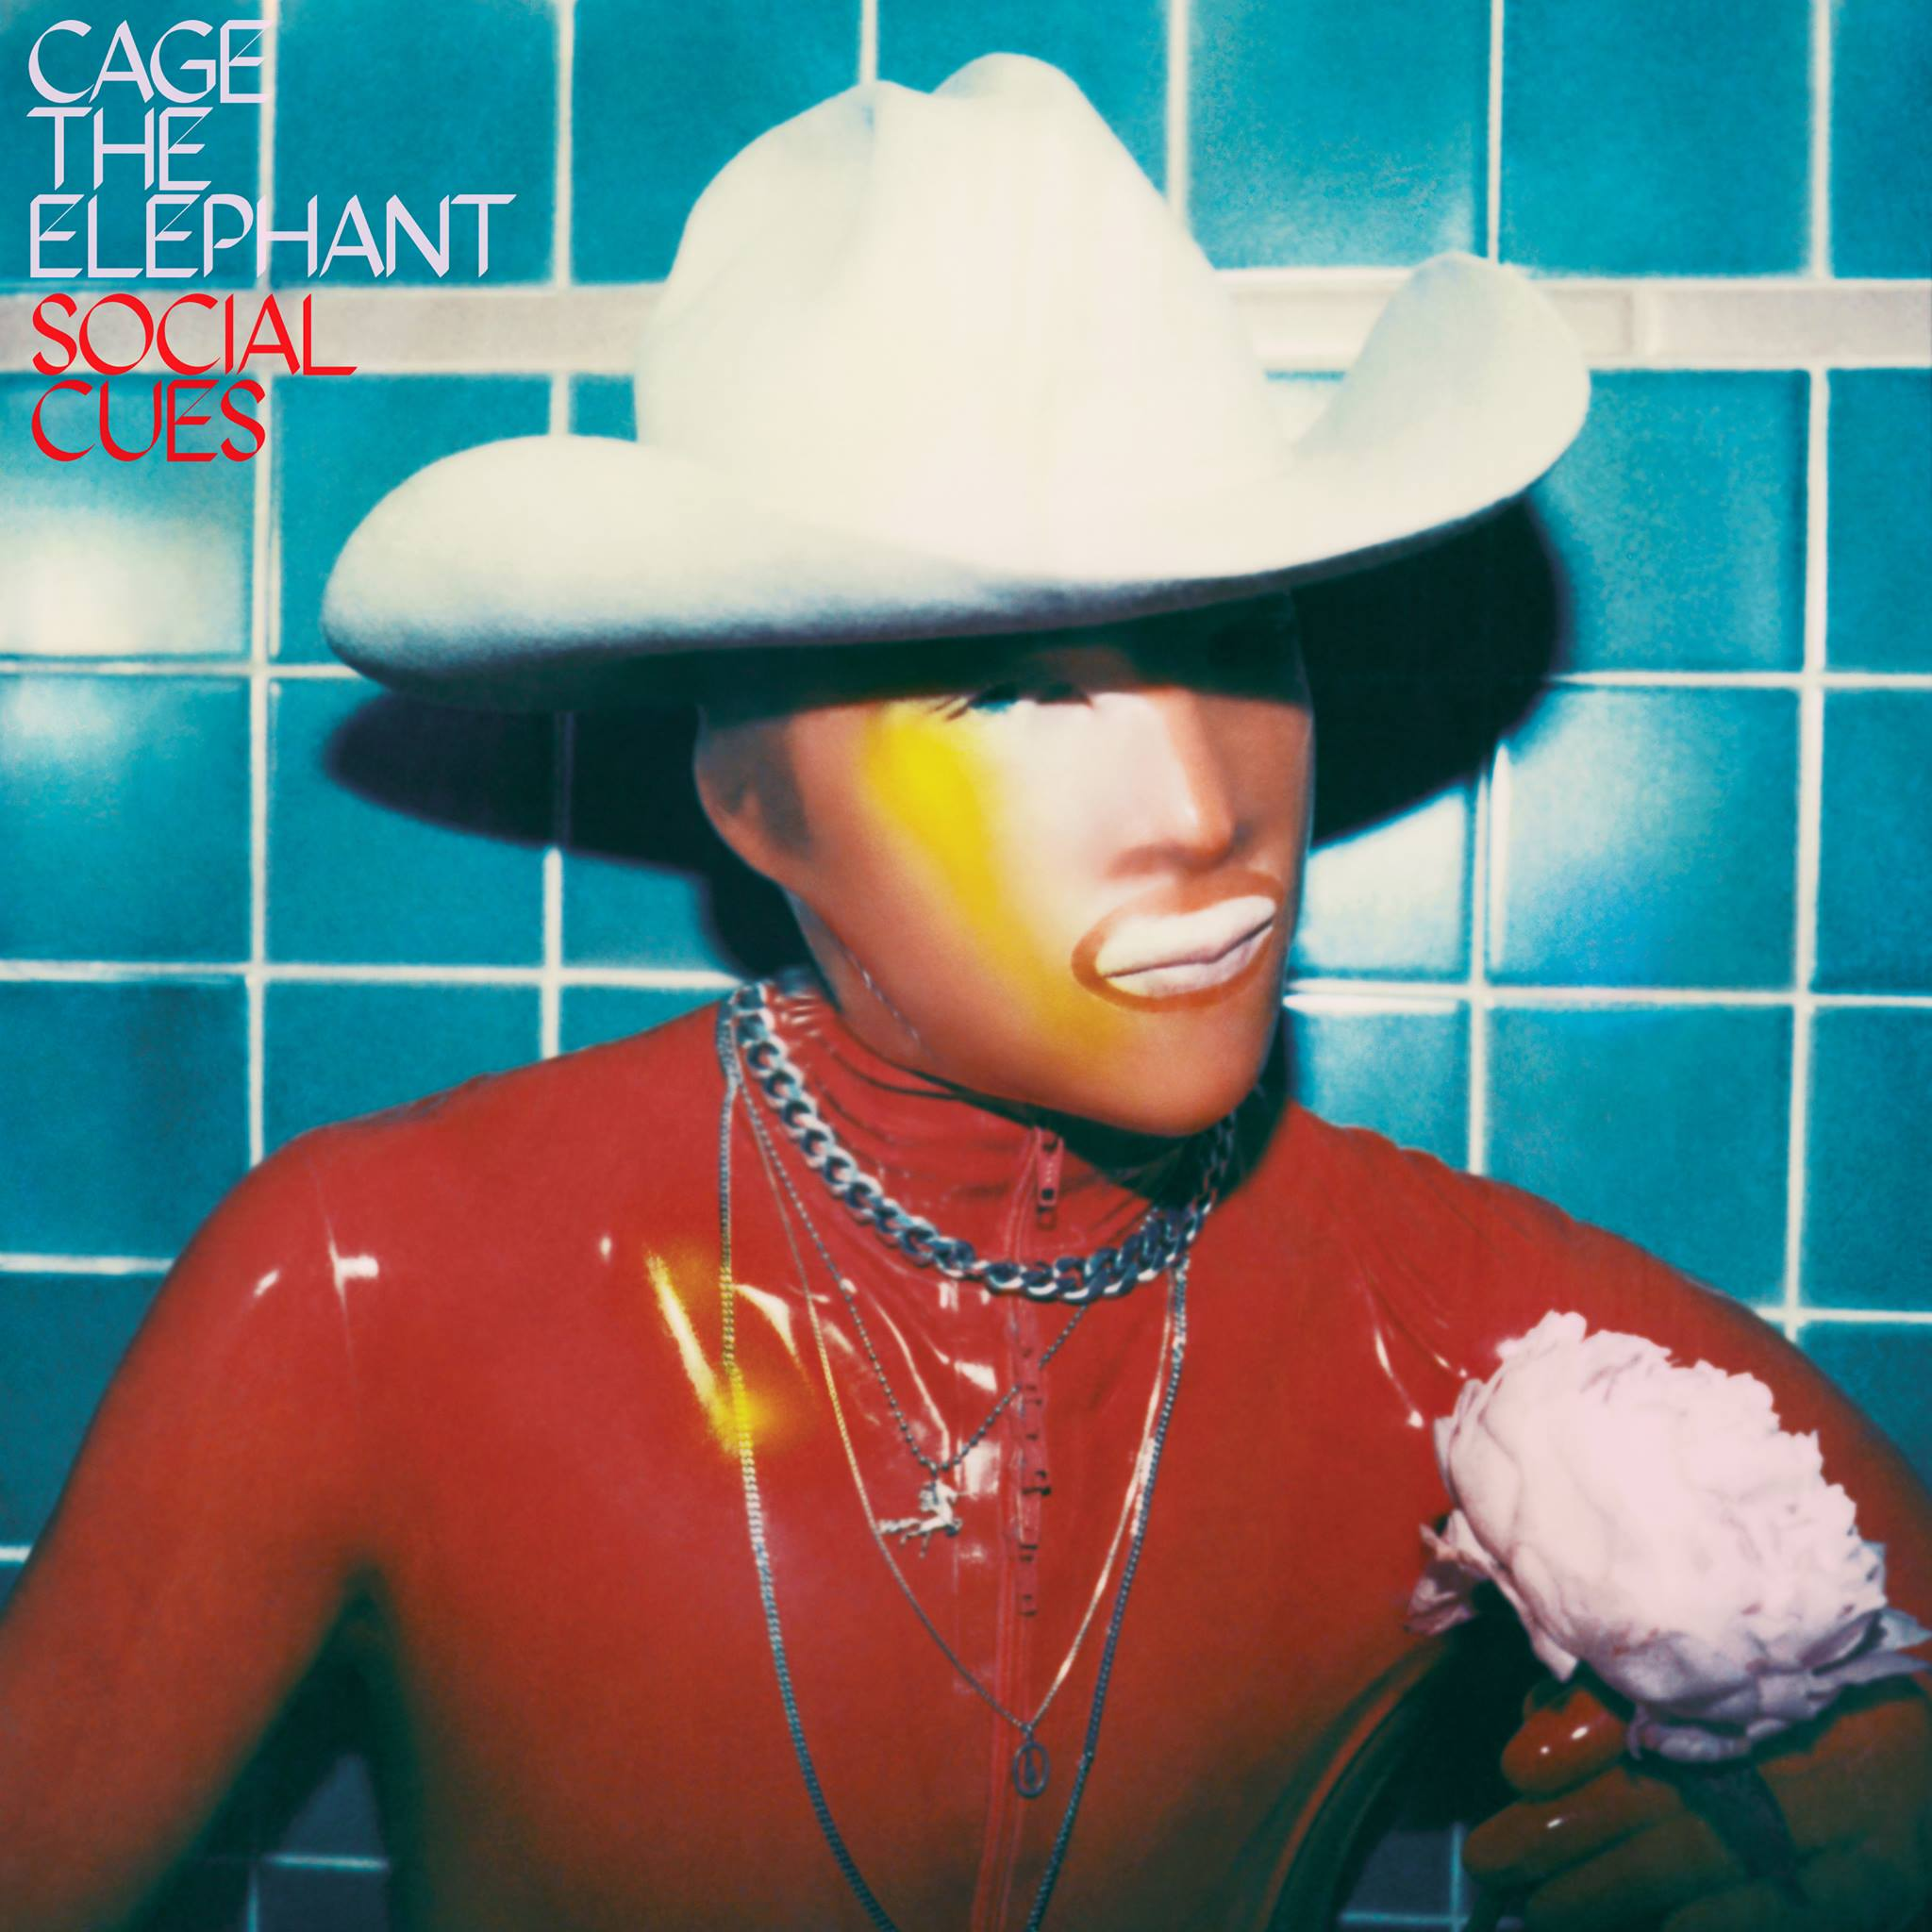 coveralbumCageTheElephantSocialCues